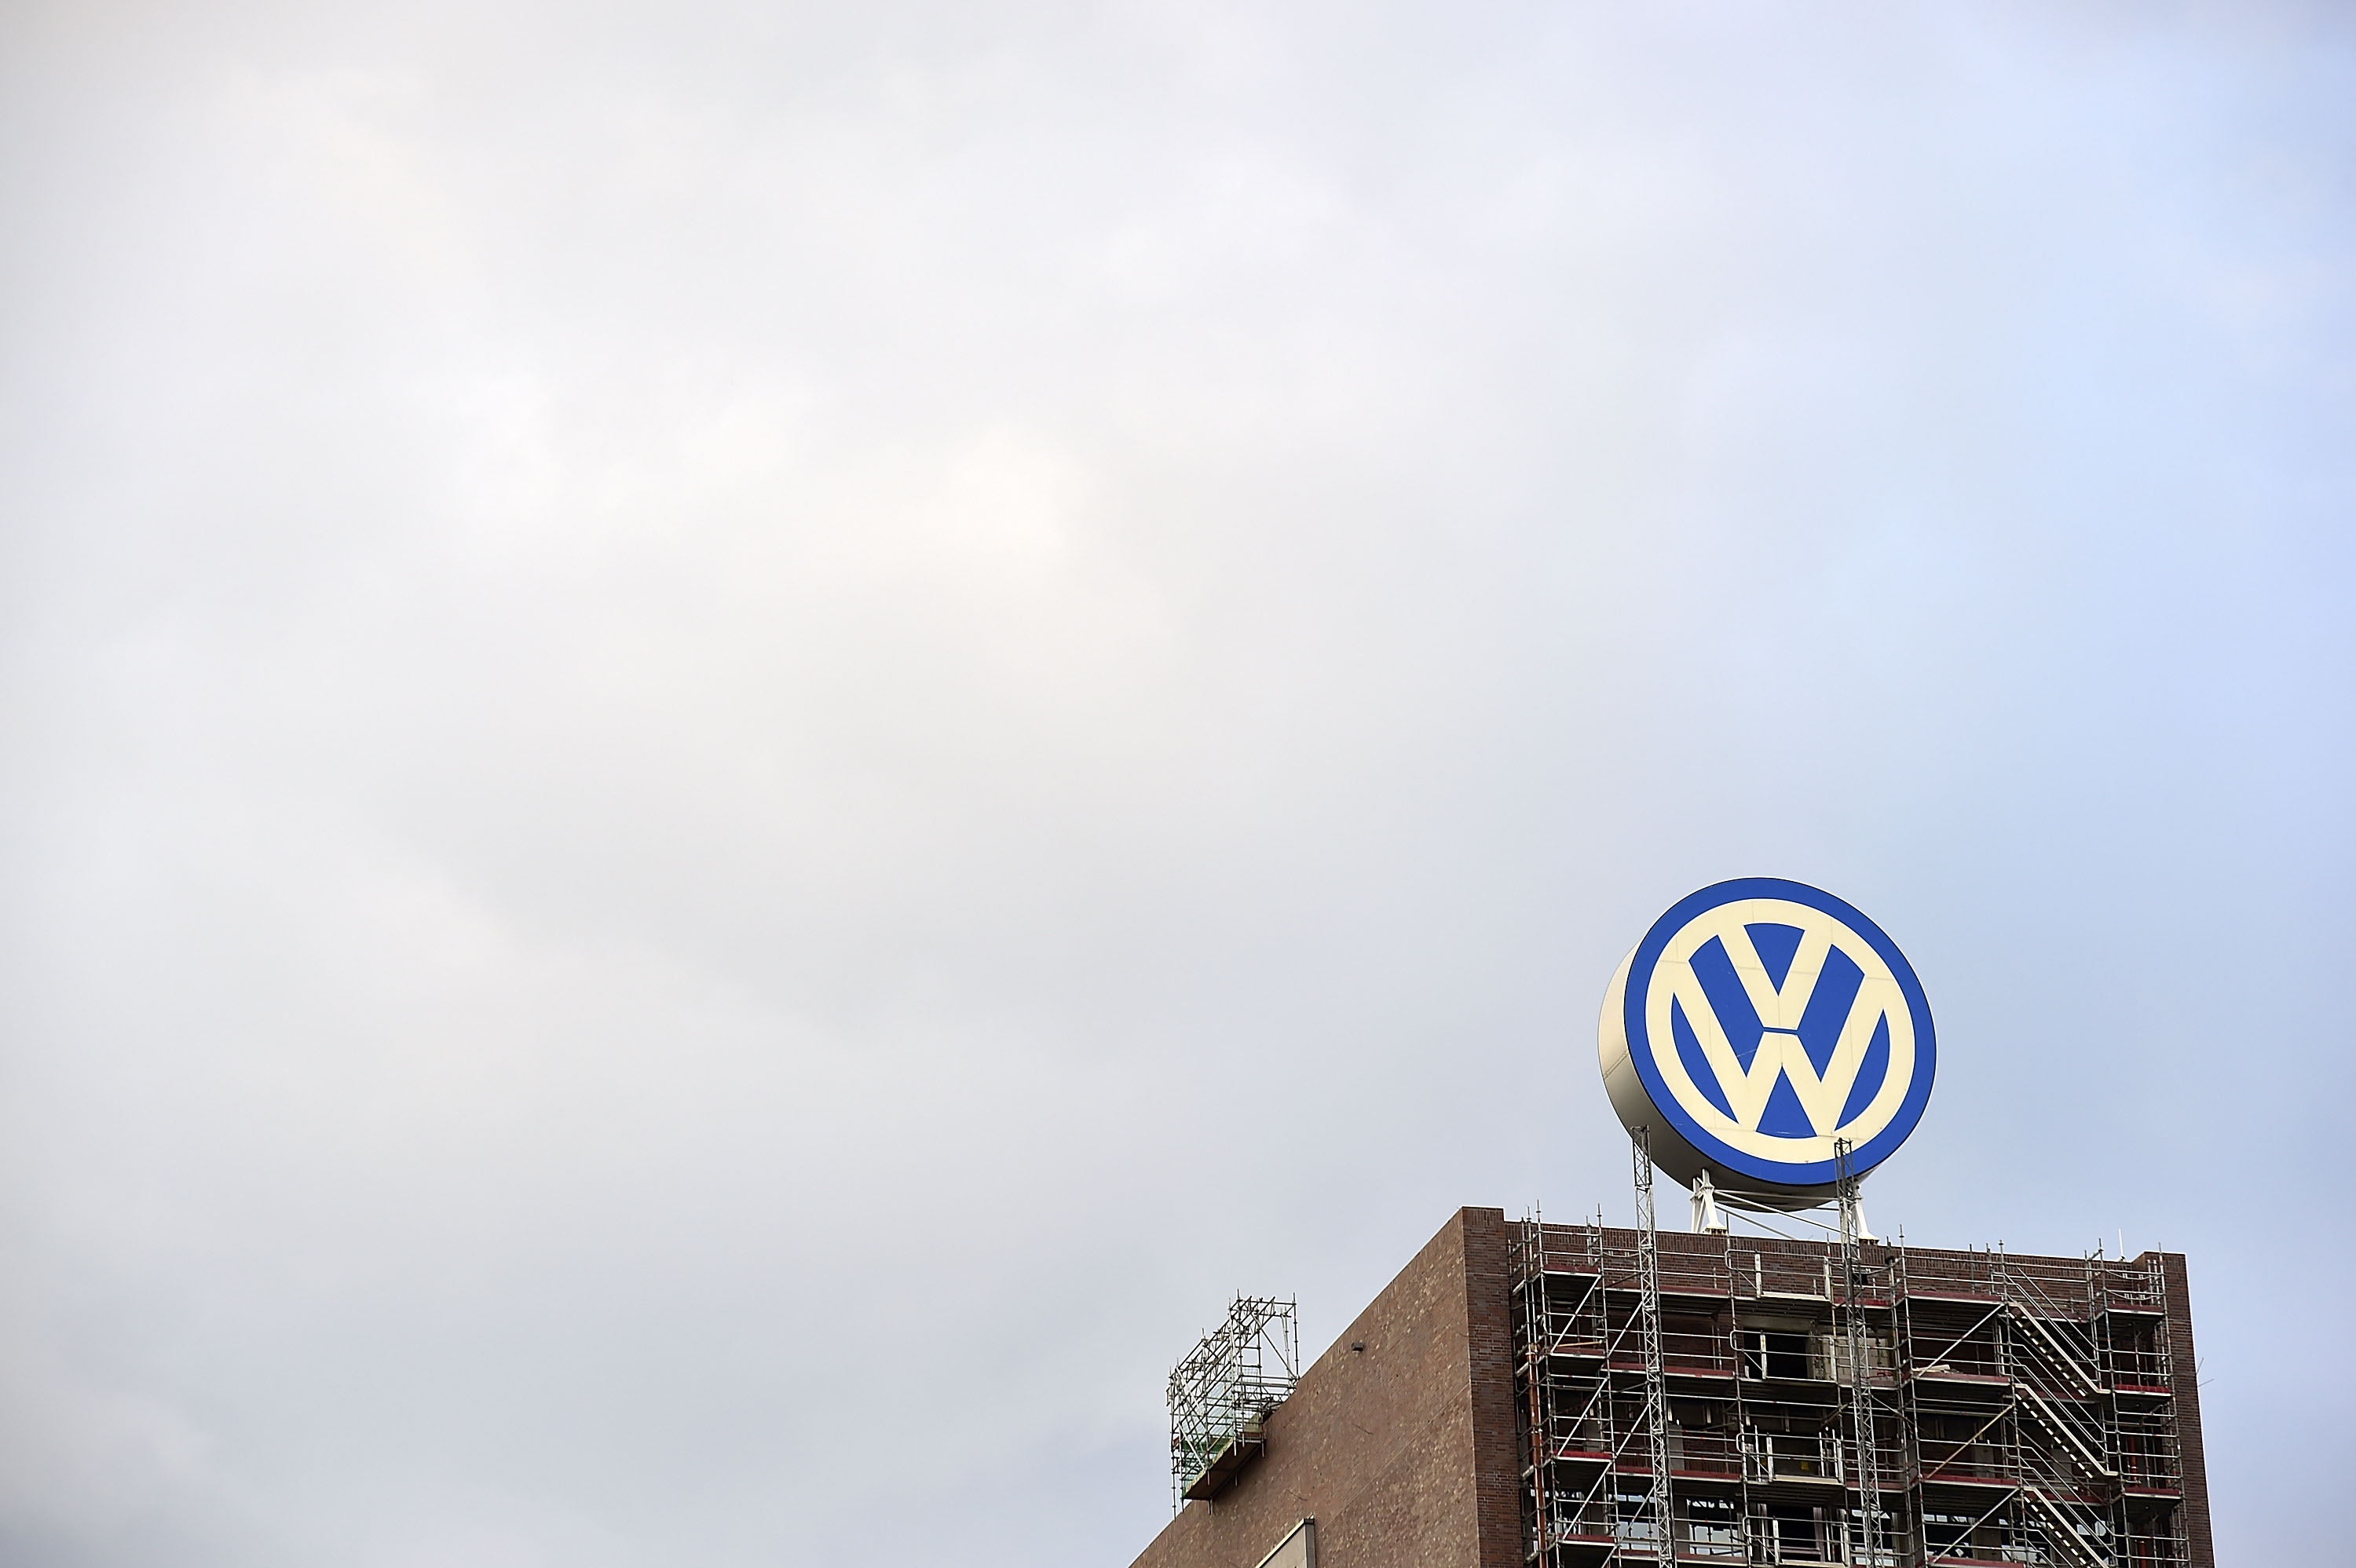 General view of Volkswagen Group headquarters during sunset in Wolfsburg, Germany, on Sept. 23, 2015.